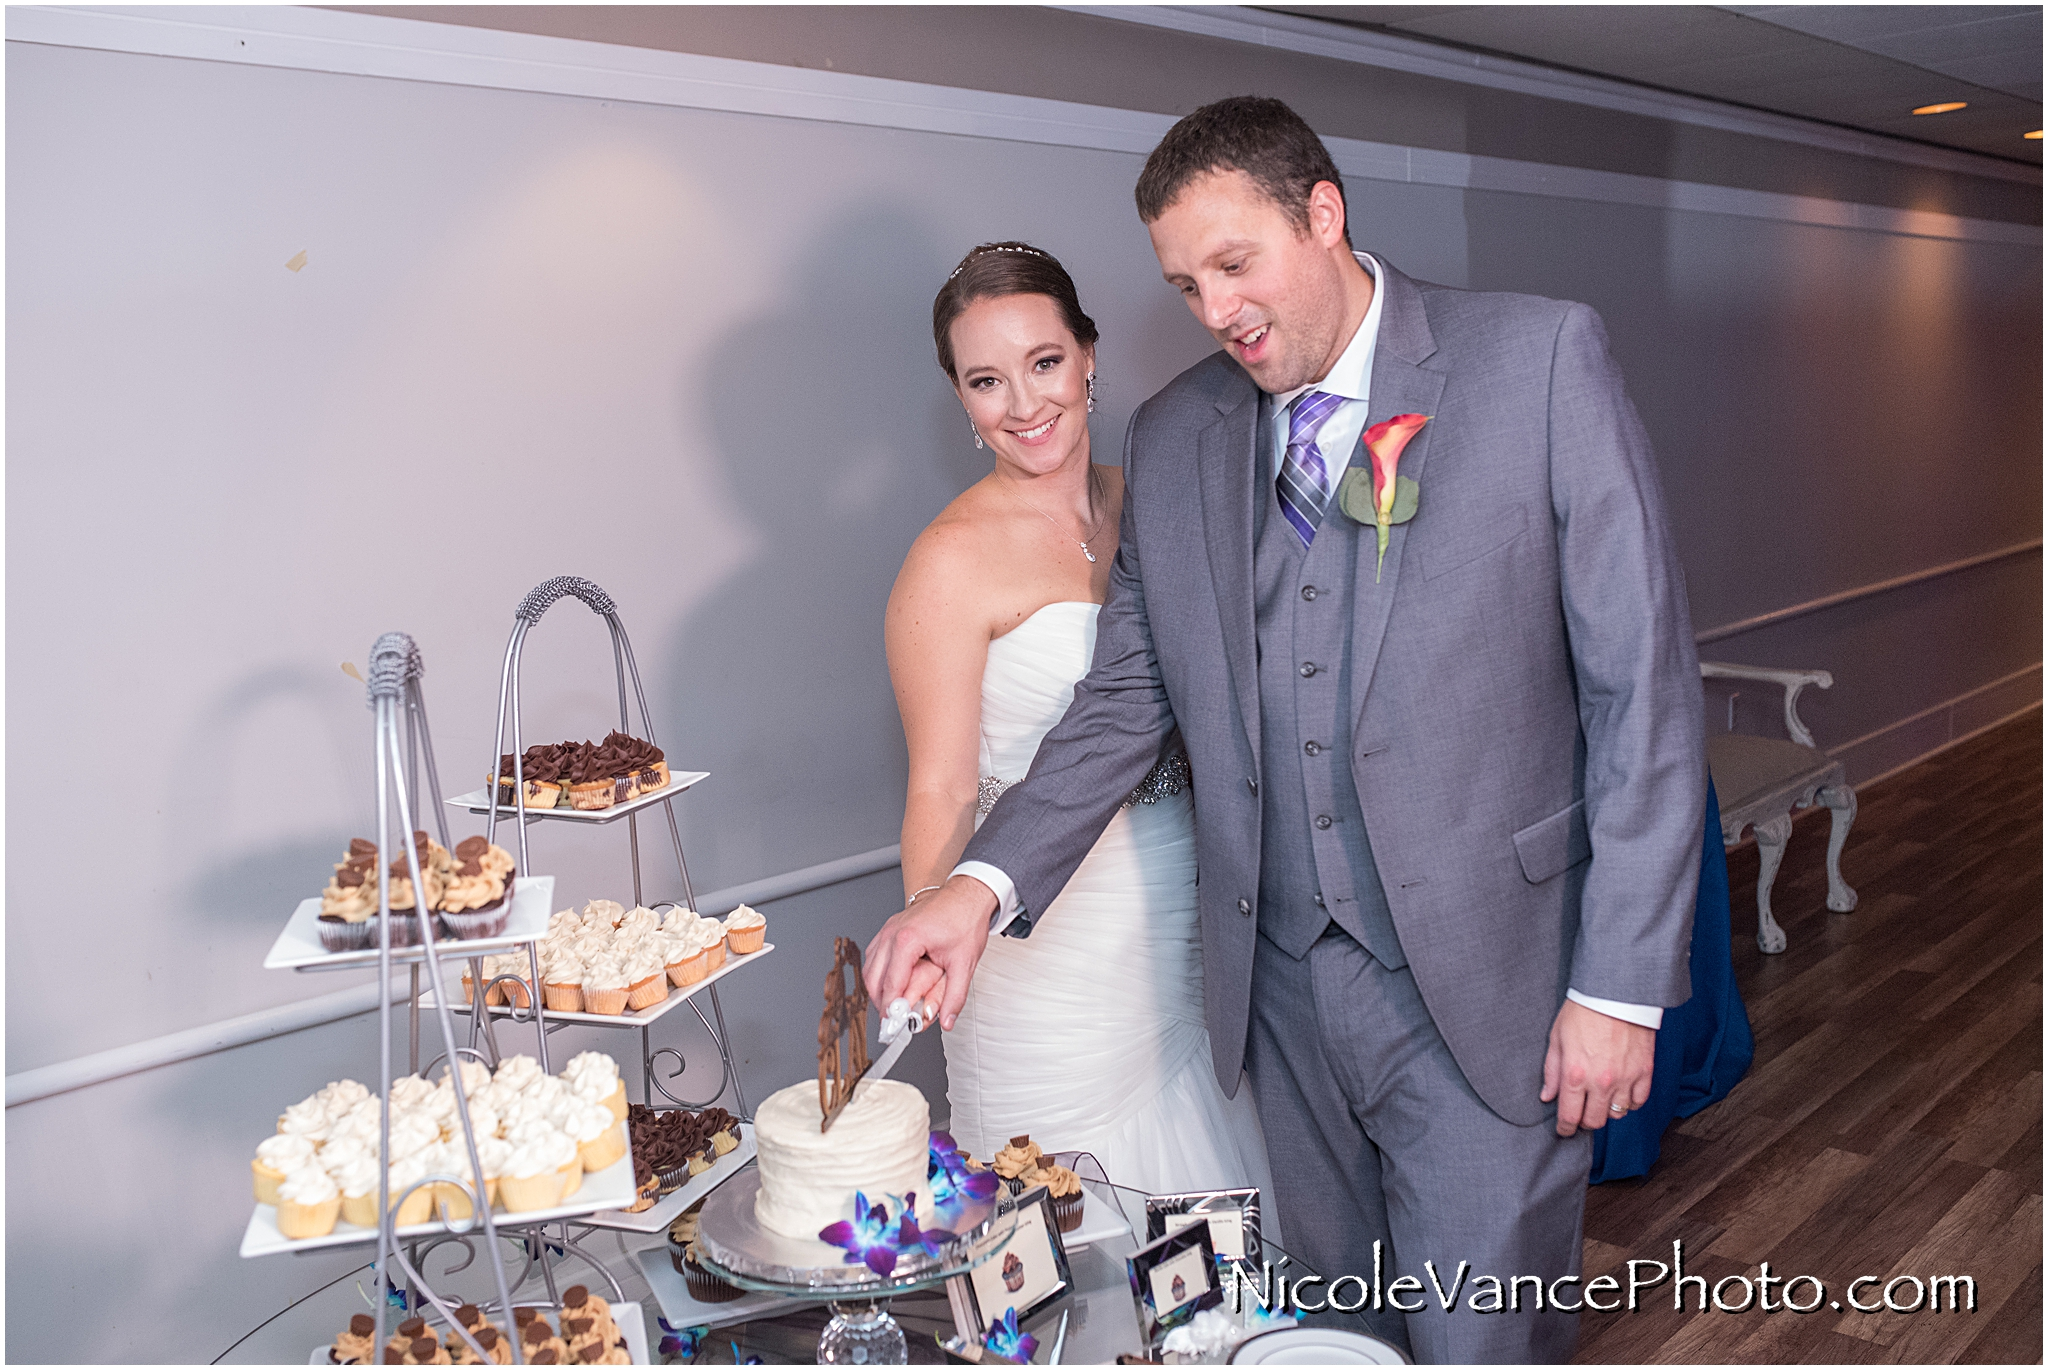 The bride and groom cut their cake, provided by Kakealicious at the reception at The Brownstone.